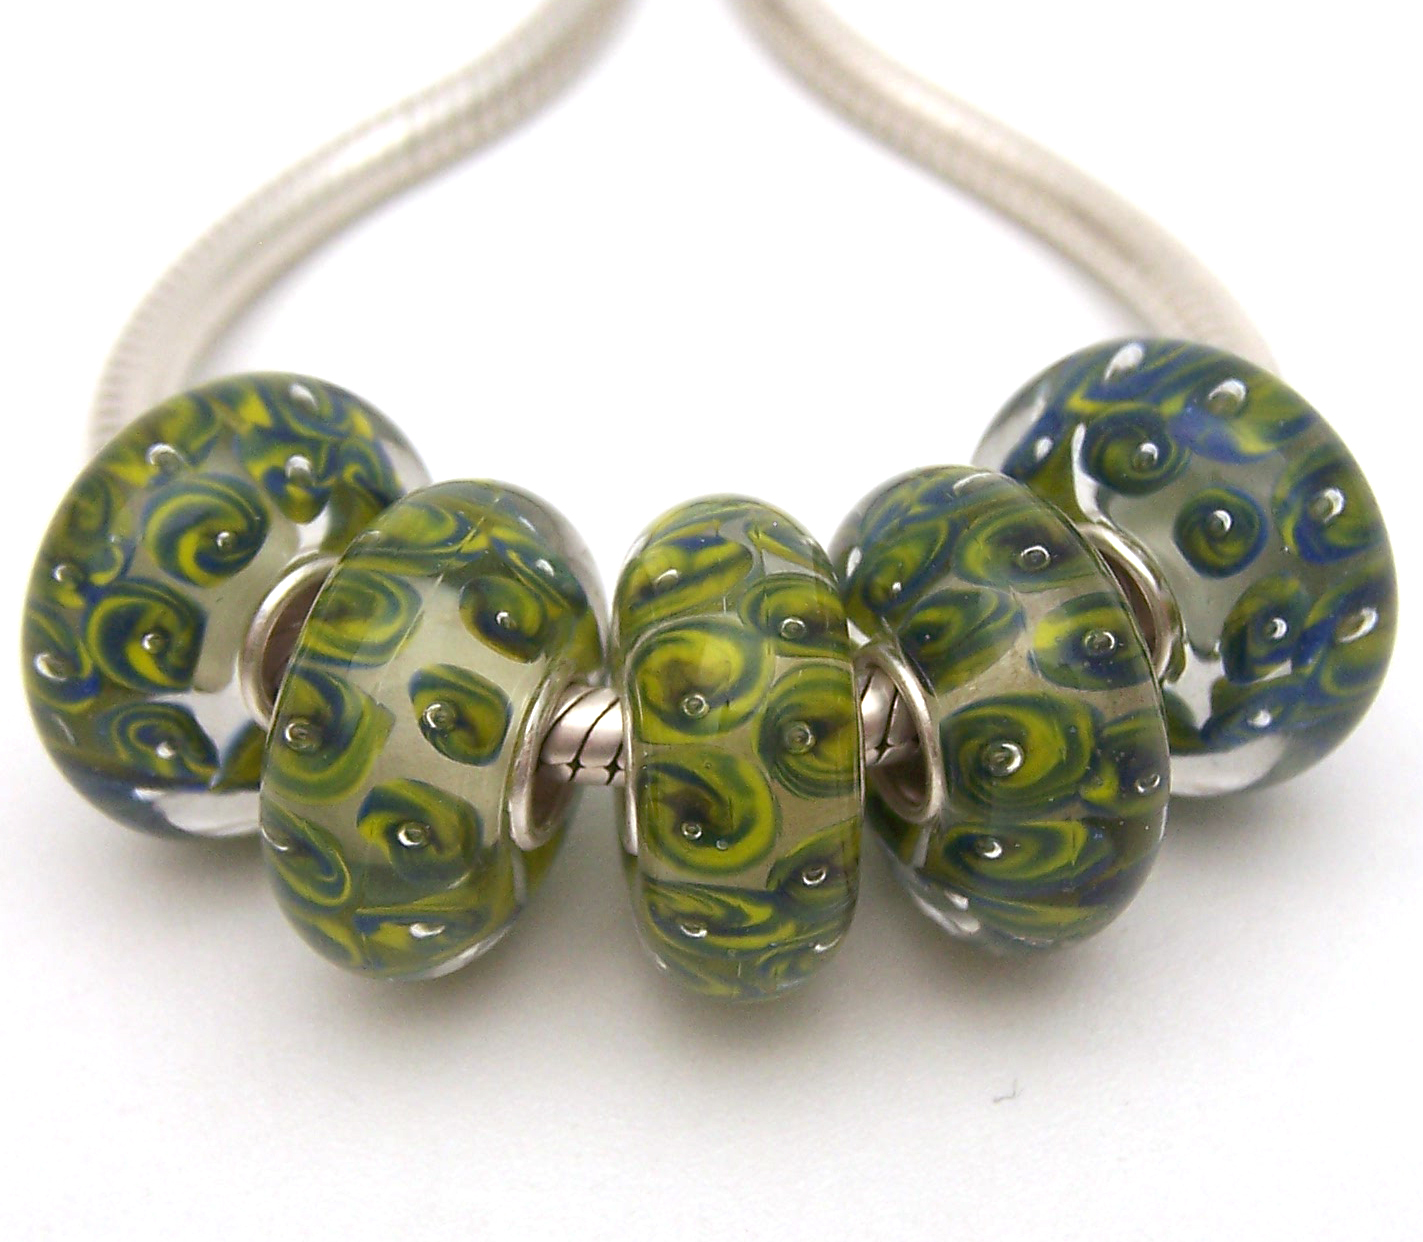 Pale Green Bubble Murano Lampwork Glass Bead fit European Bracelet Necklace